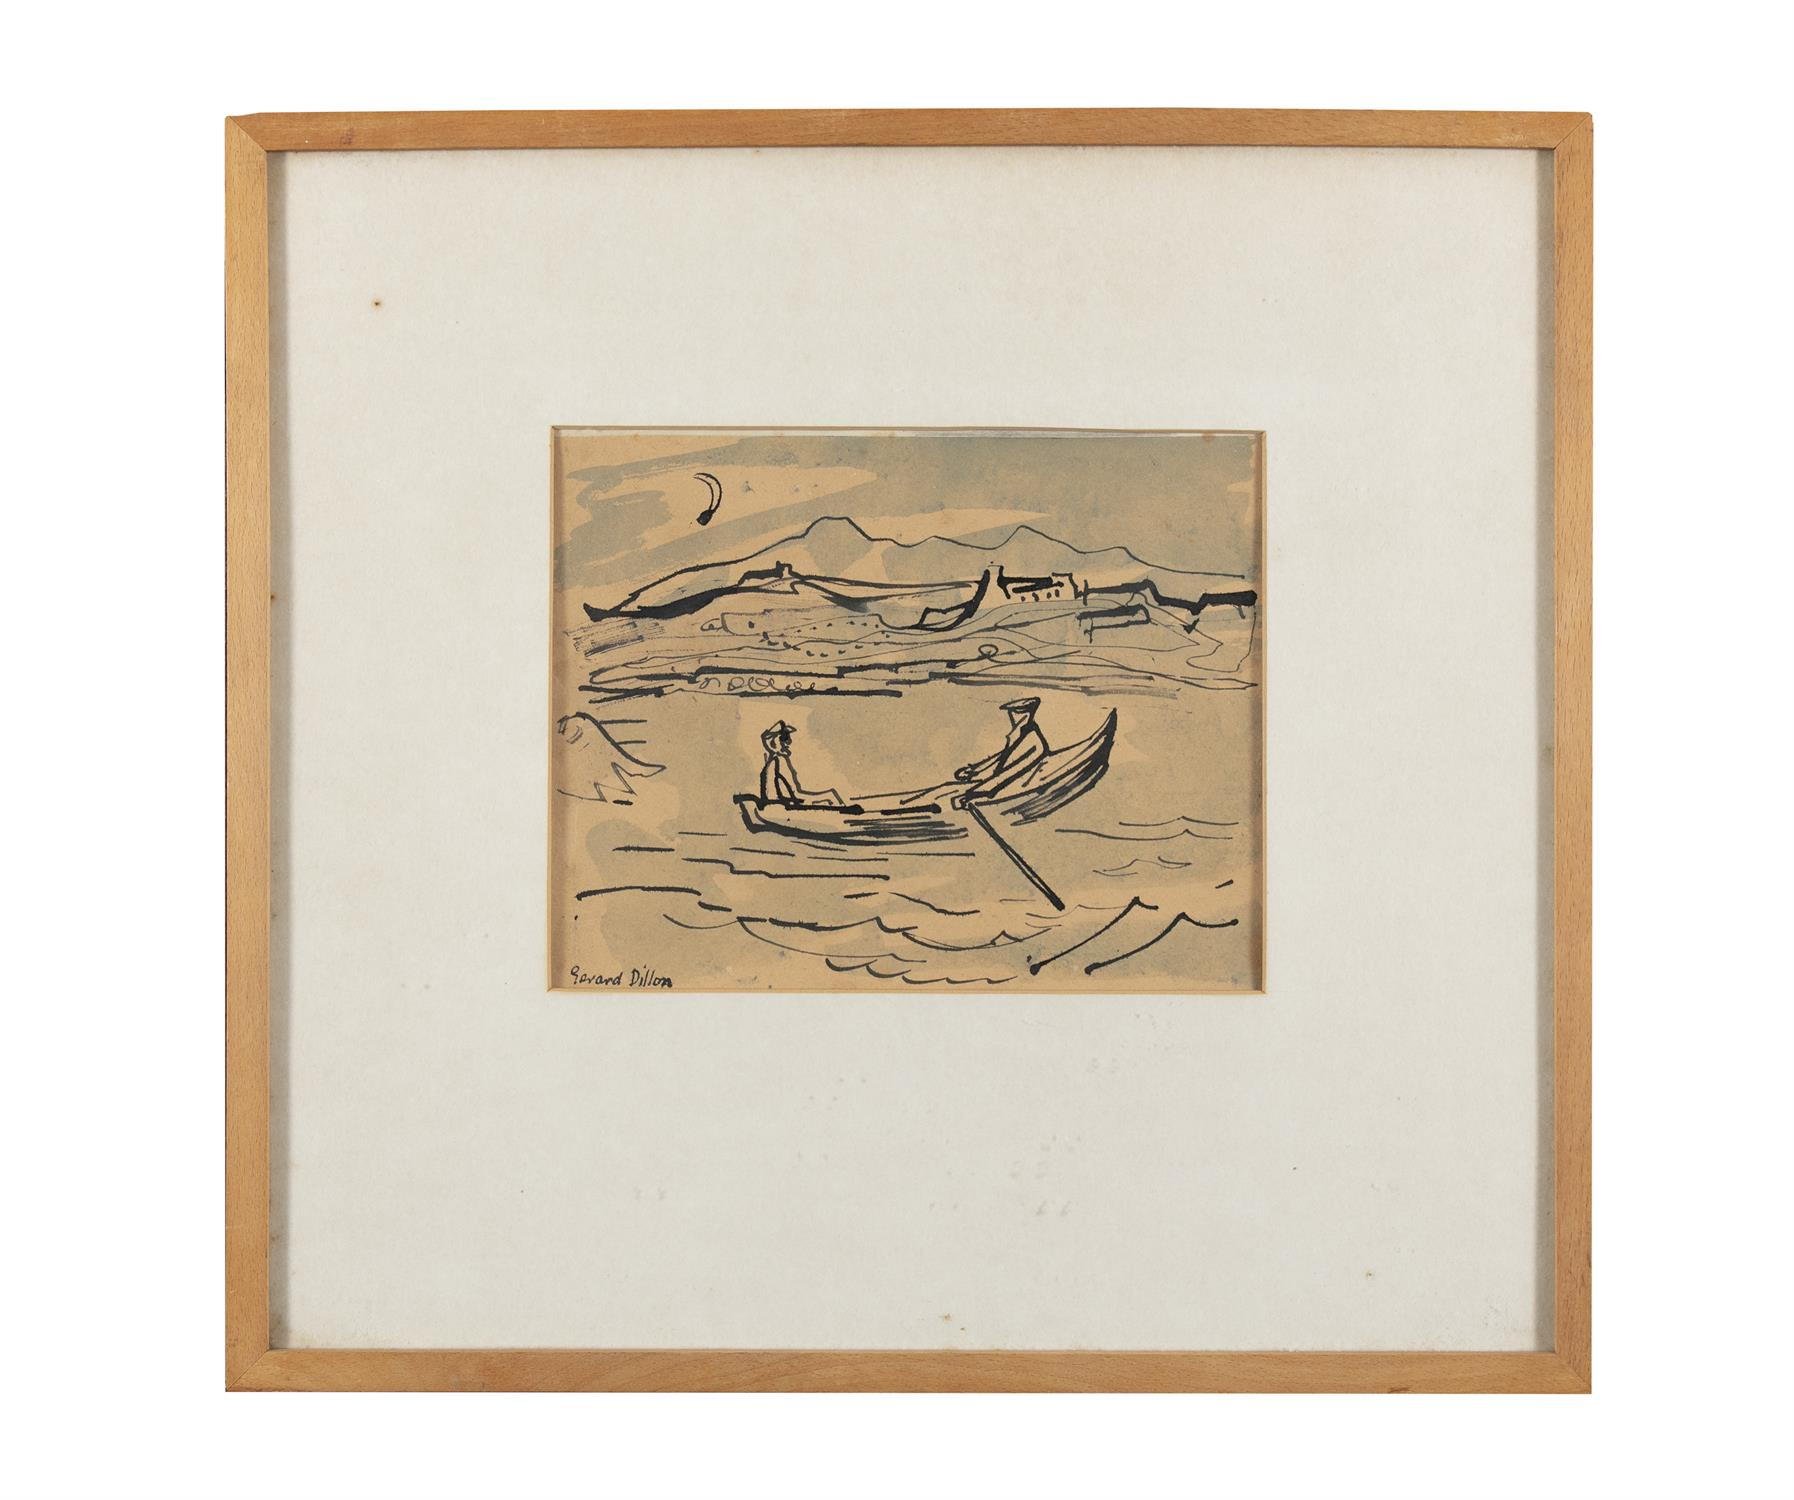 Gerard Dillon (1916-1971) Two Figures in a Currach Watercolour, 17.5 x 22.5cm (6¾ x 8¾'') Signed - Image 2 of 5